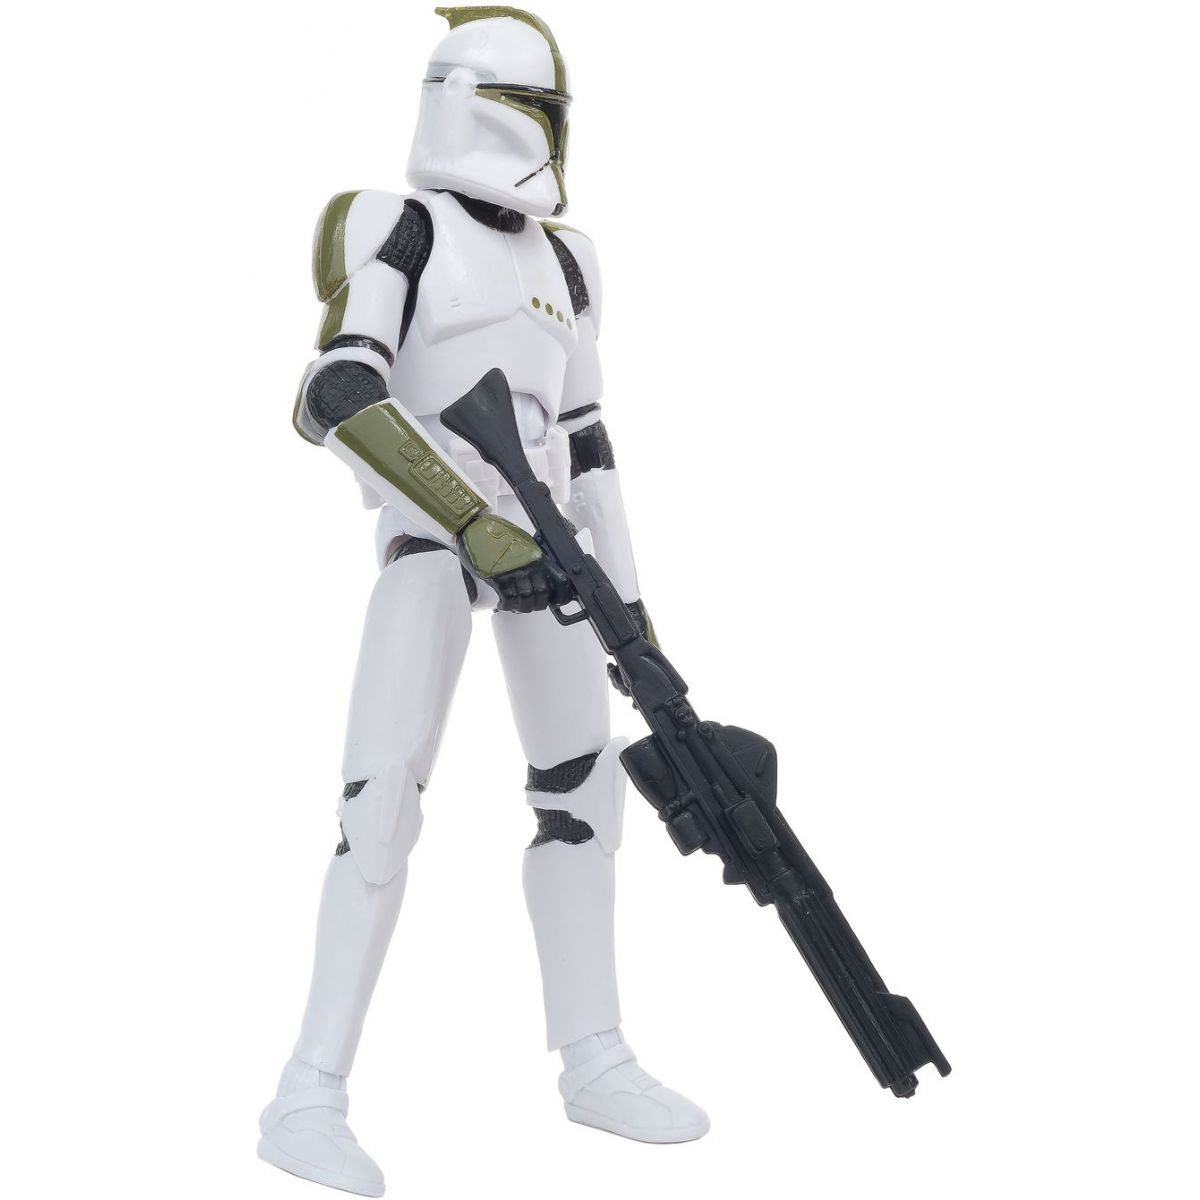 Star Wars The Black Series Hasbro A5077 - Clone Trooper Sergeant